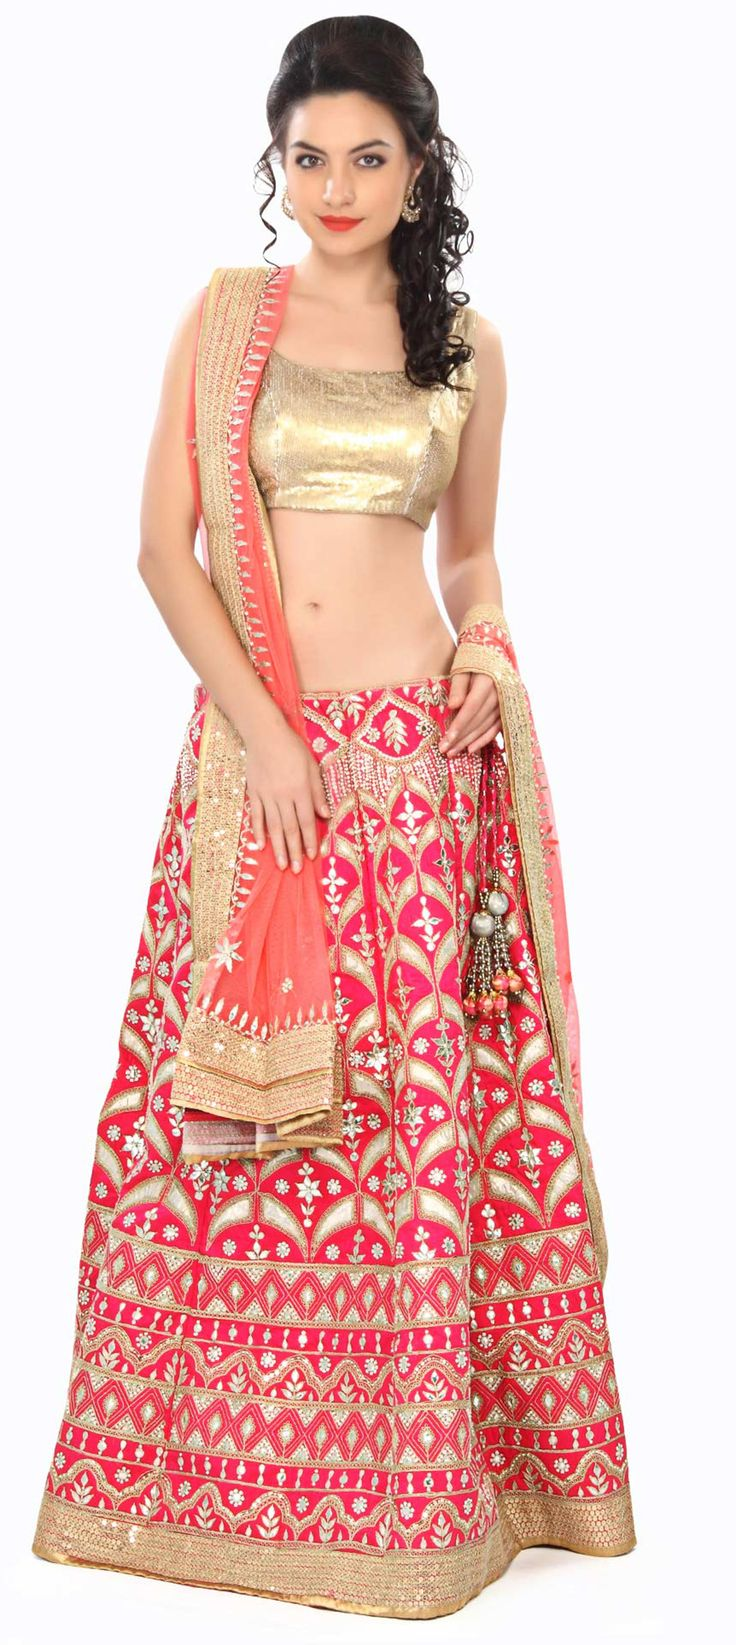 Buy Online from the link below. We ship worldwide (Free Shipping over US$100) Price - $869.00 Click Anywhere to Tag  http://www.kalkifashion.com/fuchsia-pink-lehenga-adorn-in-applique-embroidery-only-on-kalki.html